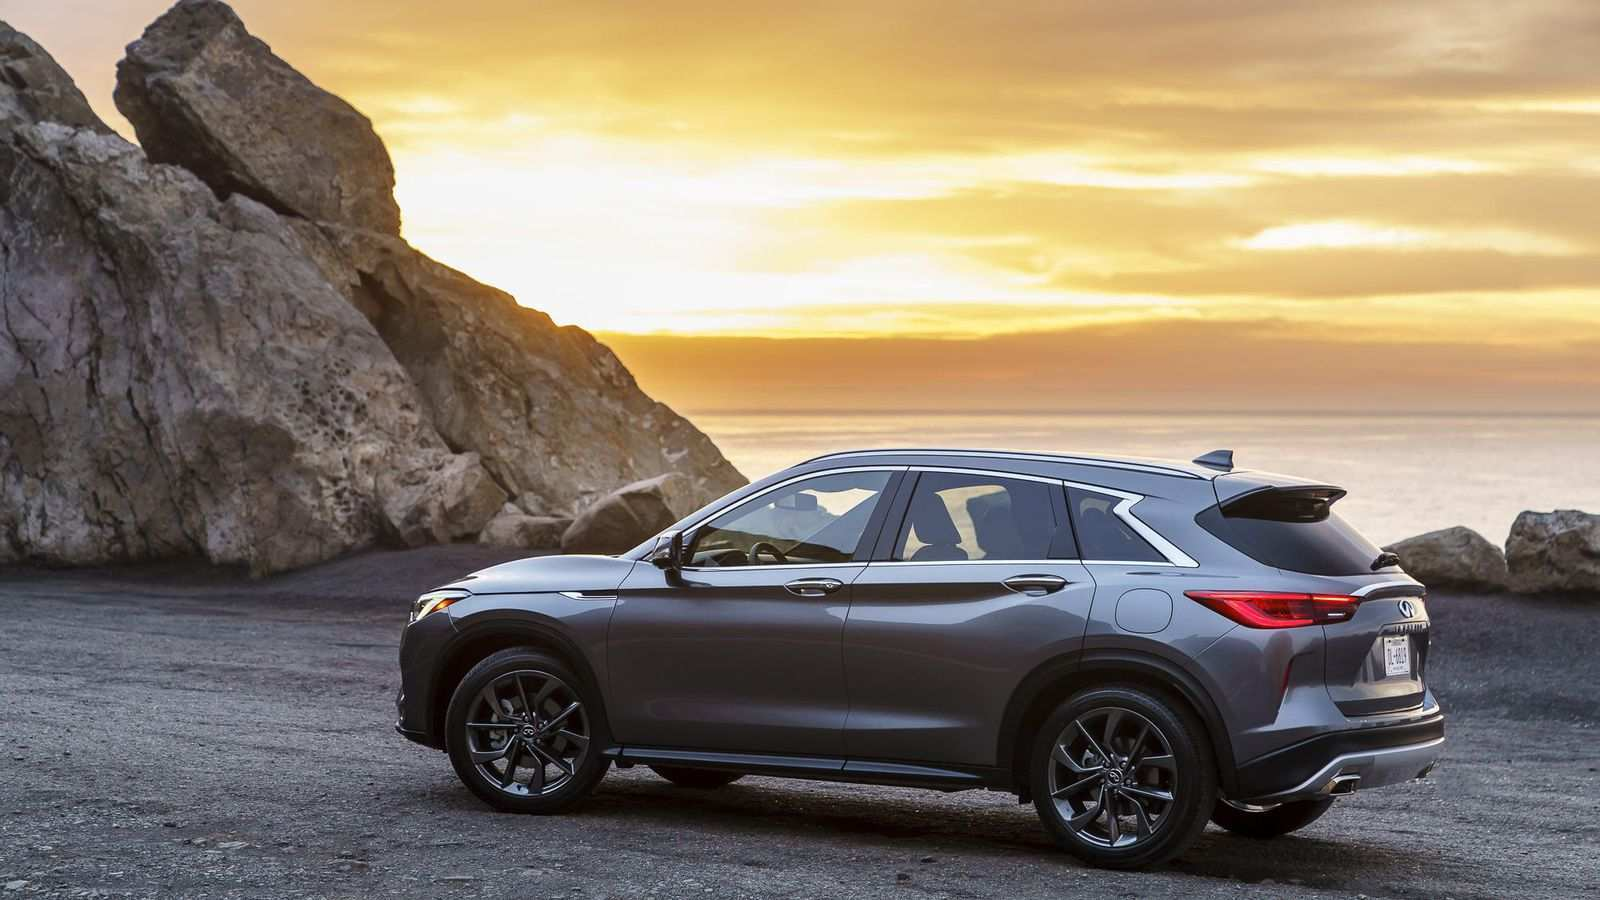 95 New 2020 Infiniti Qx50 Exterior Prices for 2020 Infiniti Qx50 Exterior